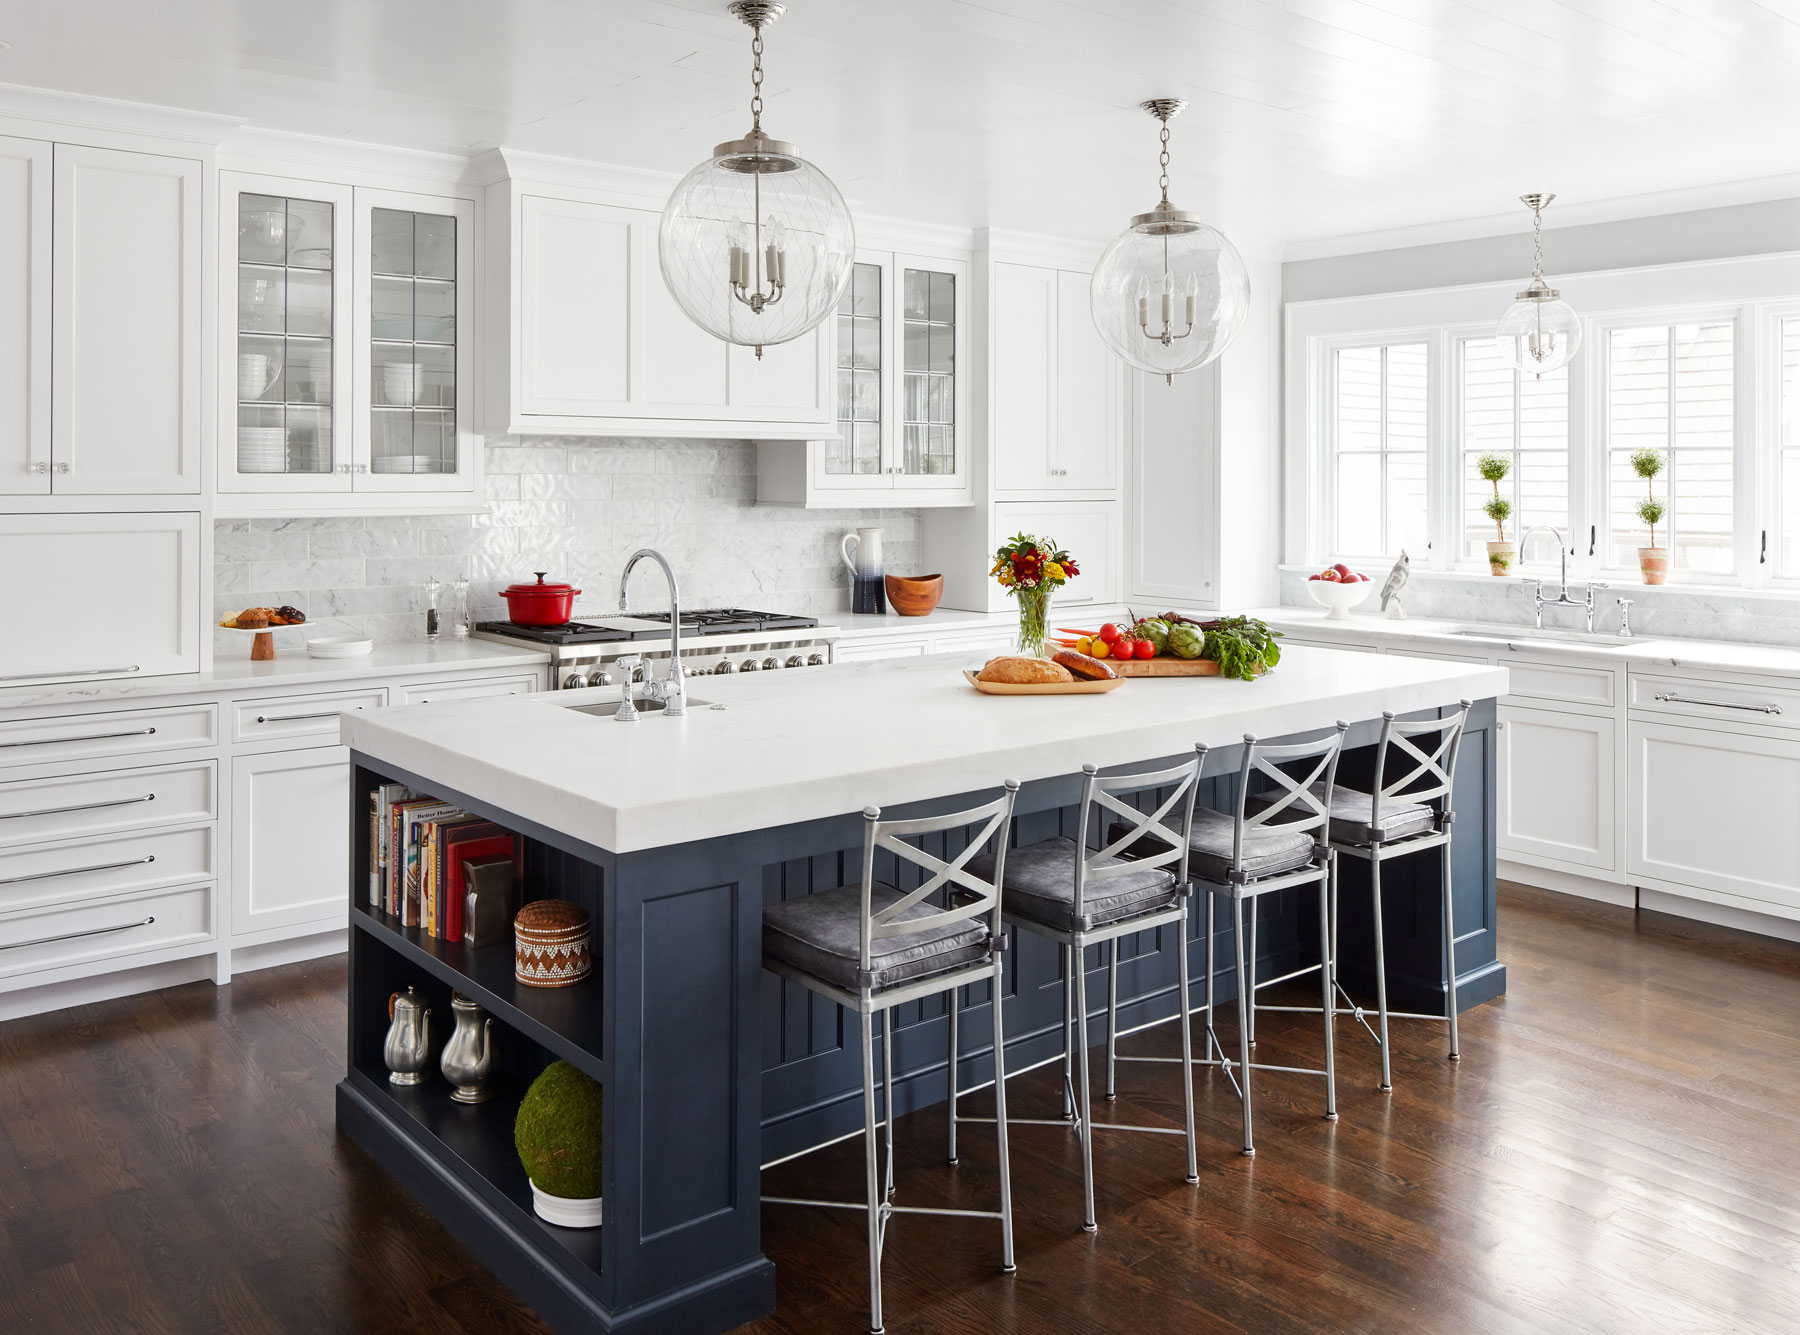 Compared to the living room and foyer, the kitchen is much calmer—though with the same impactful blue focal point.